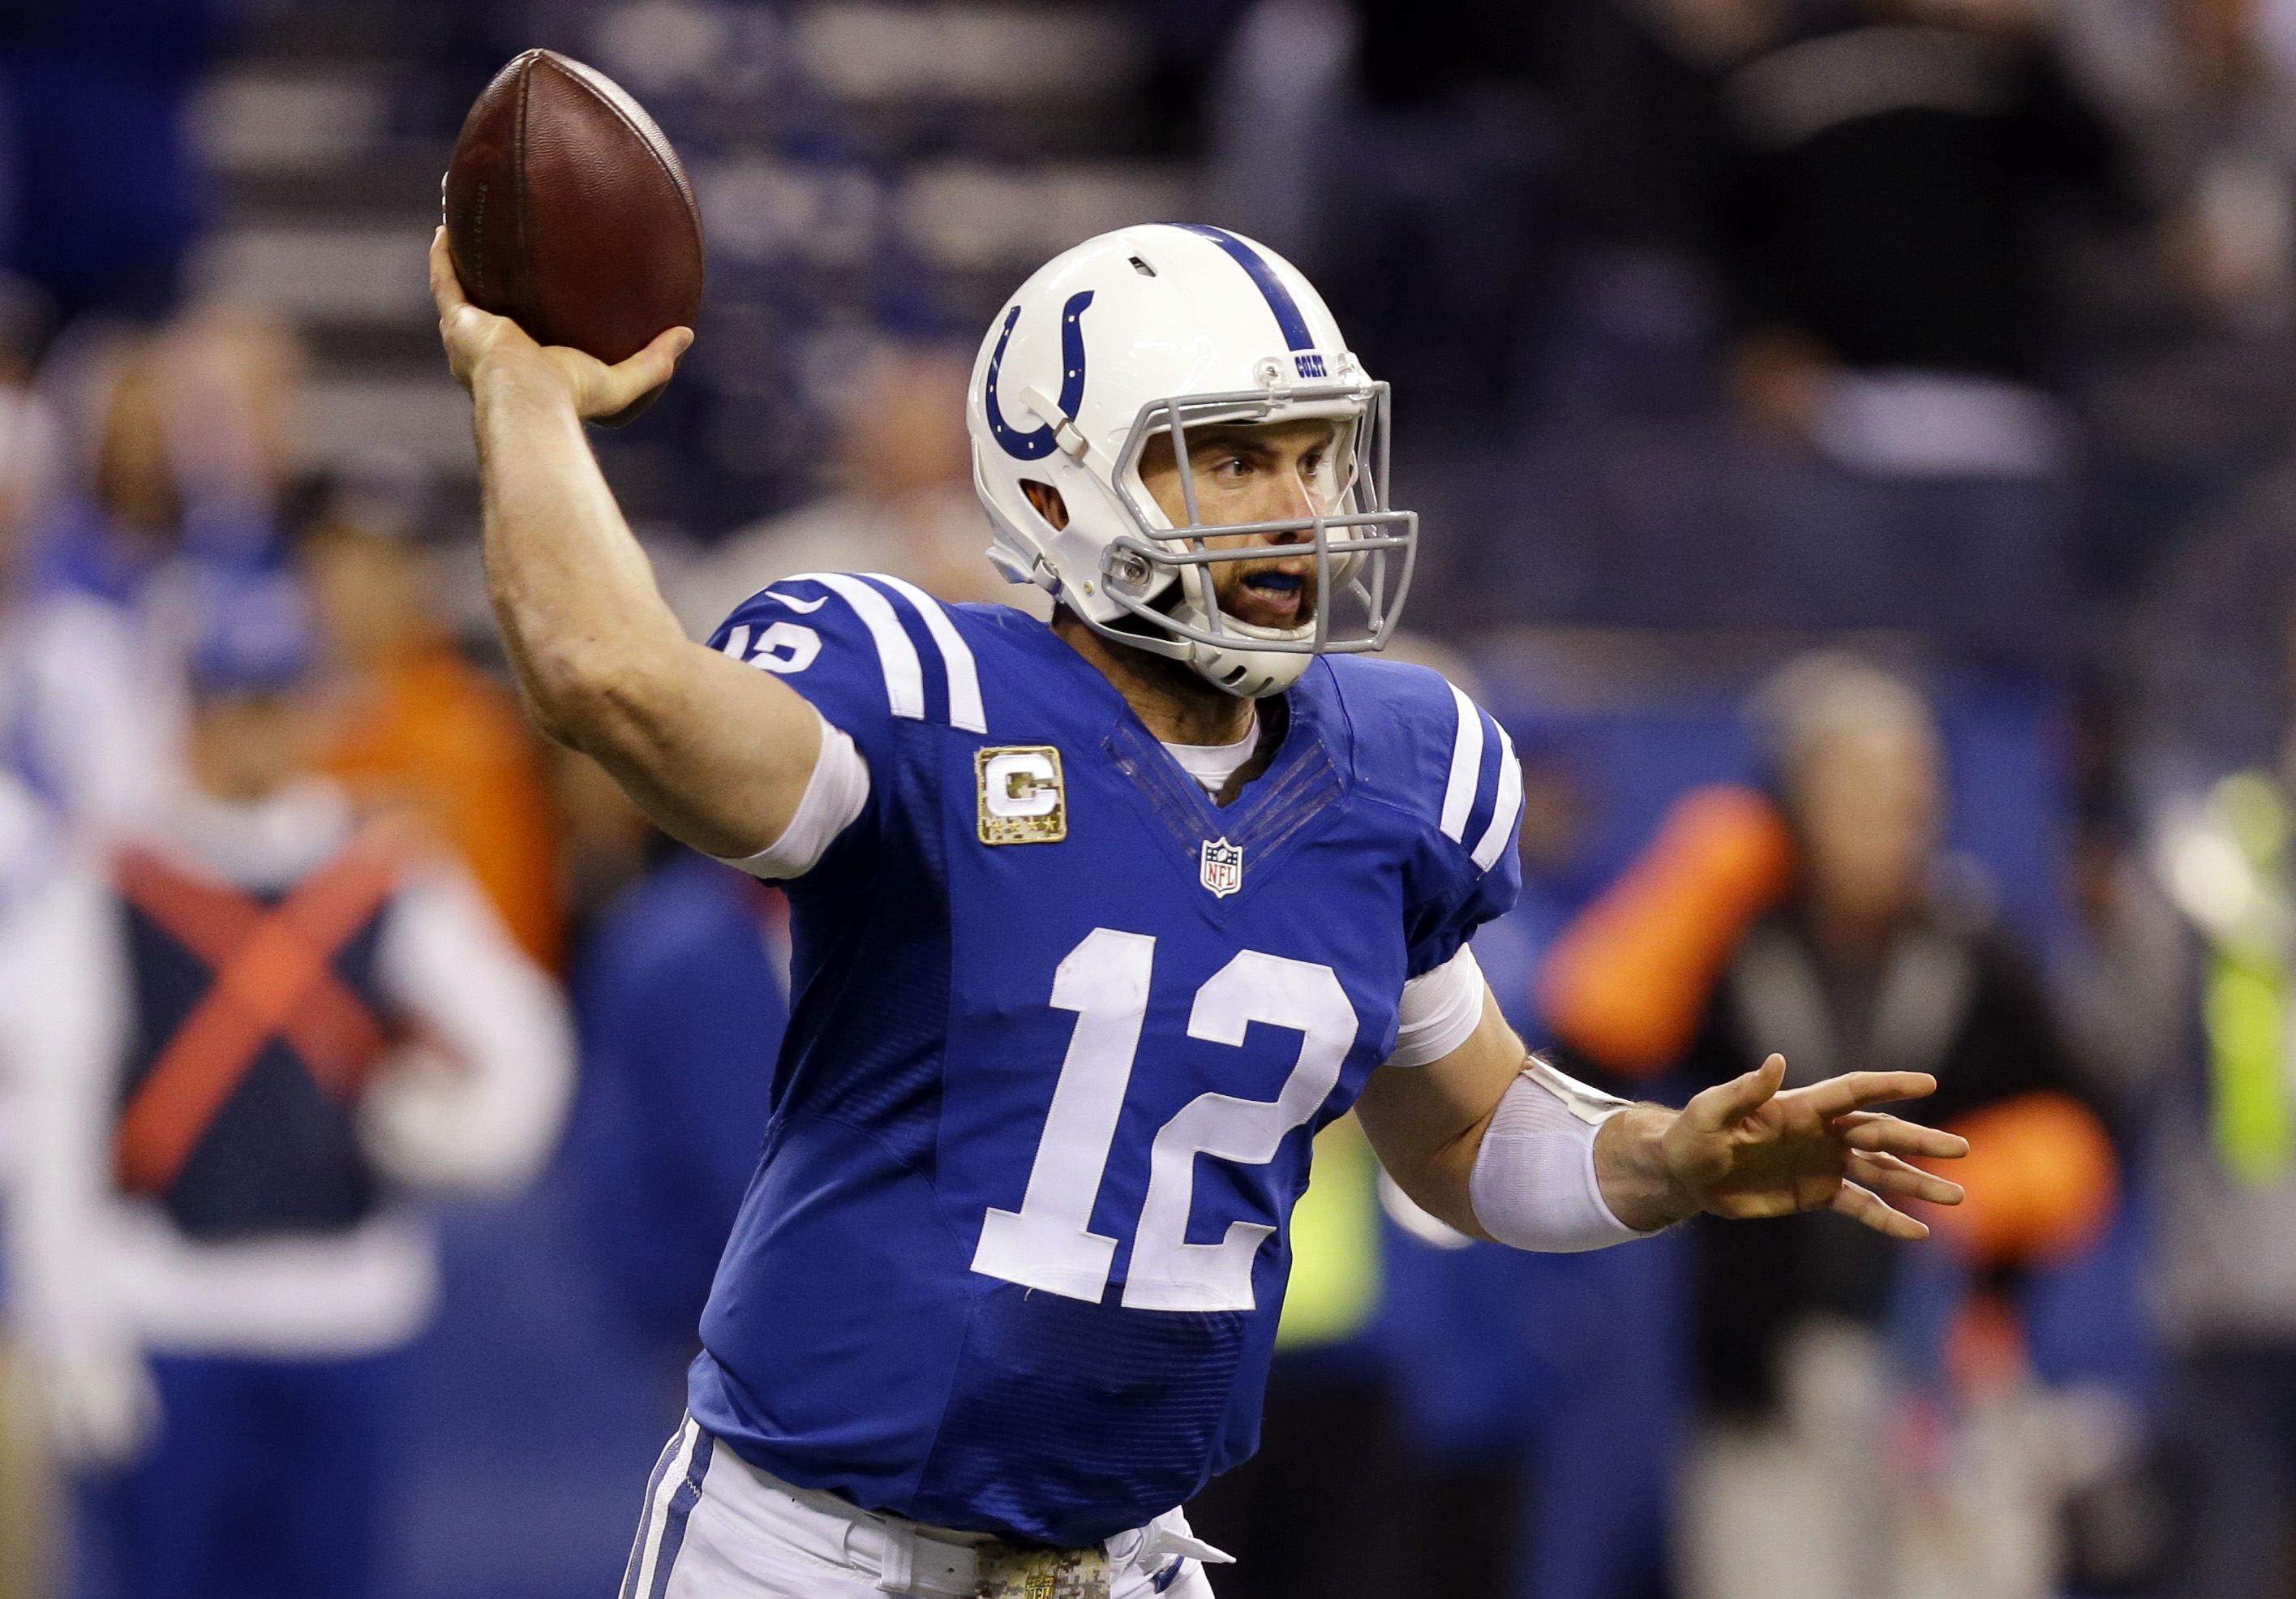 Indianapolis Colts' Andrew Luck  throws during the second half of an NFL football game against the Denver Broncos, Sunday, Nov. 8, 2015, in Indianapolis.  Luck is expected to miss two to six weeks after sustaining a lacerated kidney and torn abdominal mus